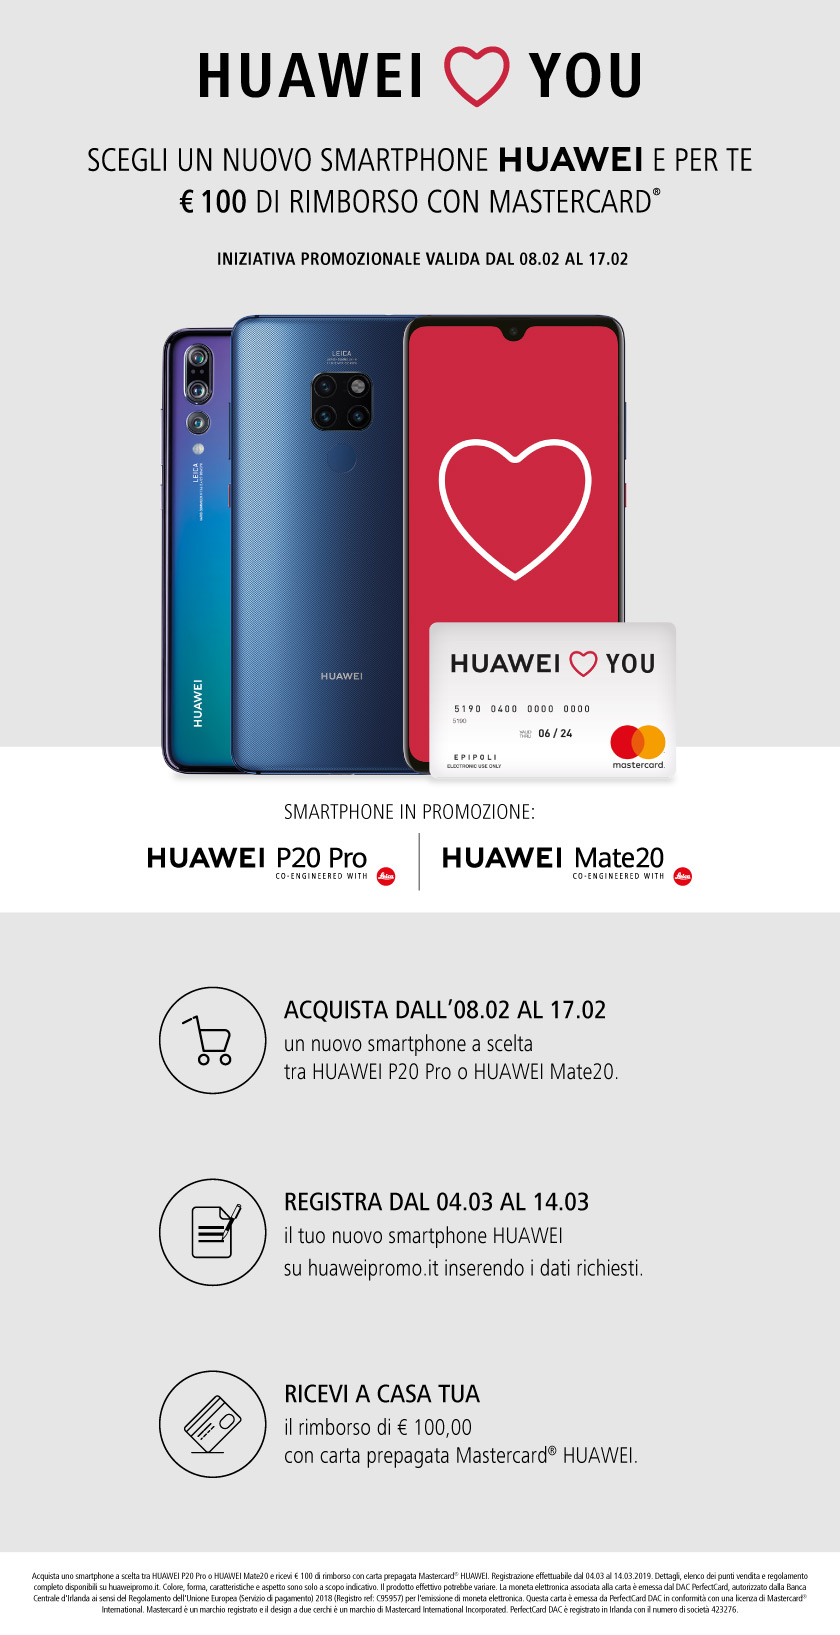 Huawei loves you